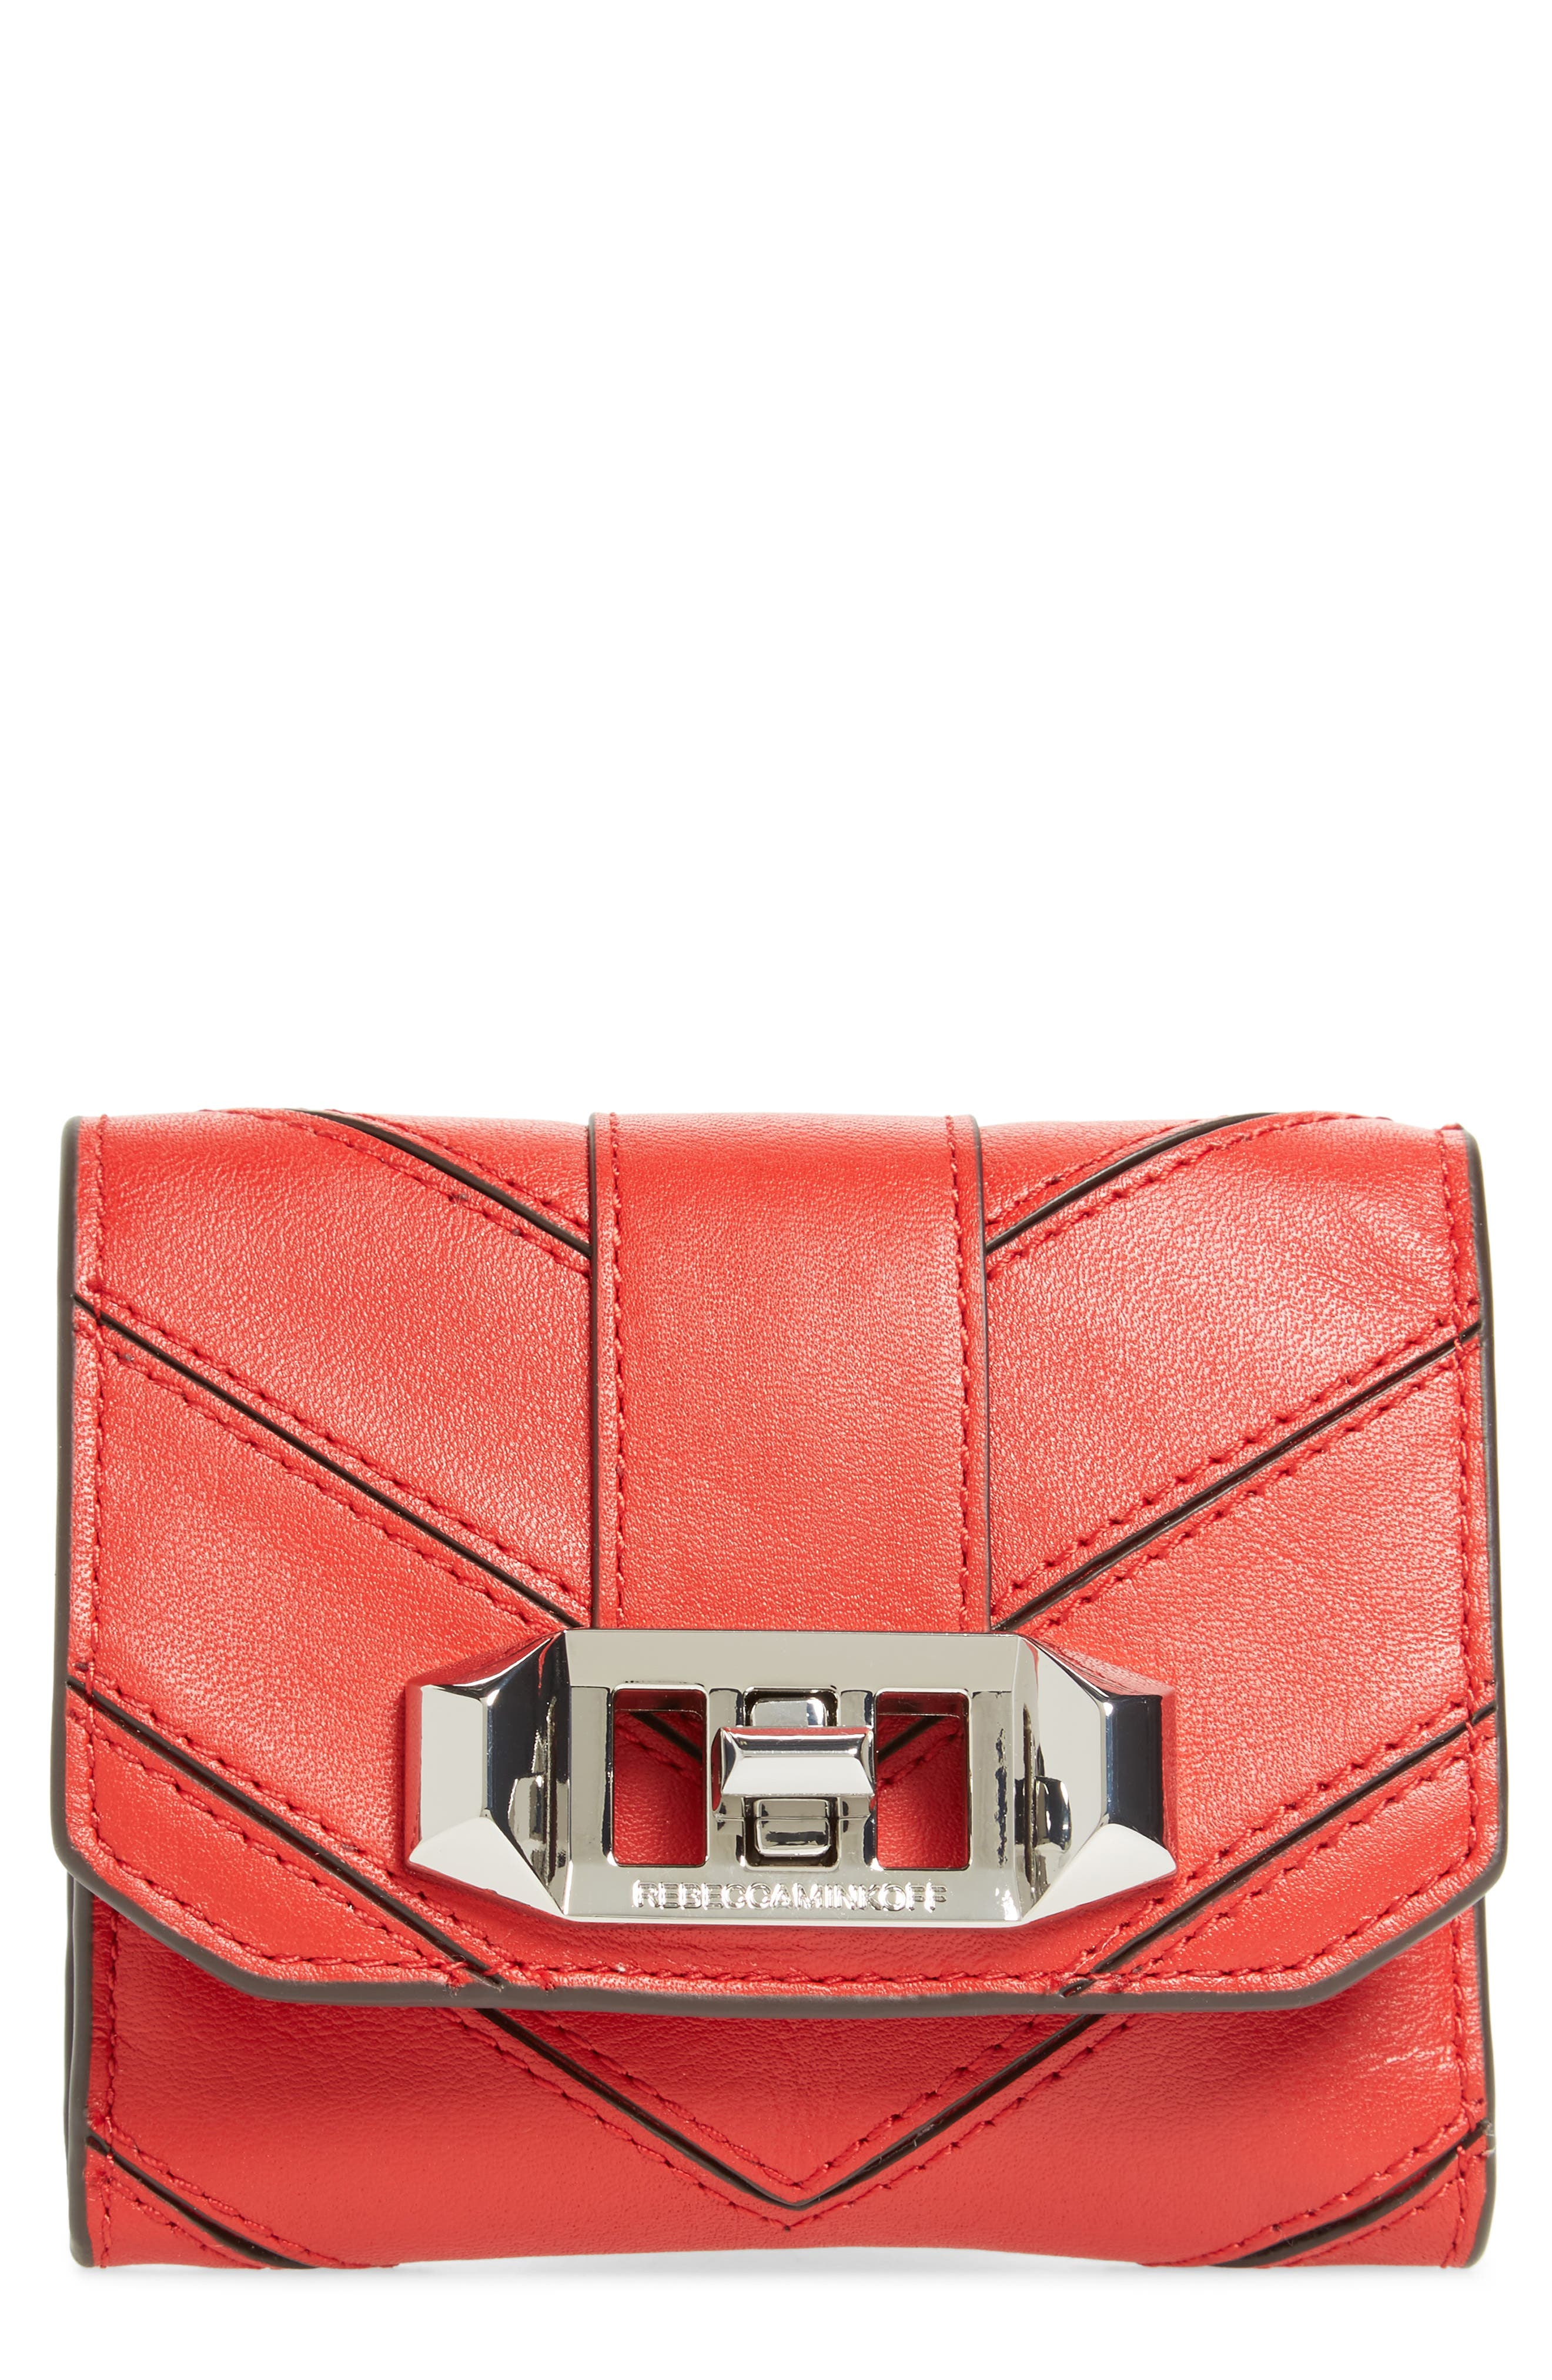 Rebecca Minkoff Love Lock Leather Wallet